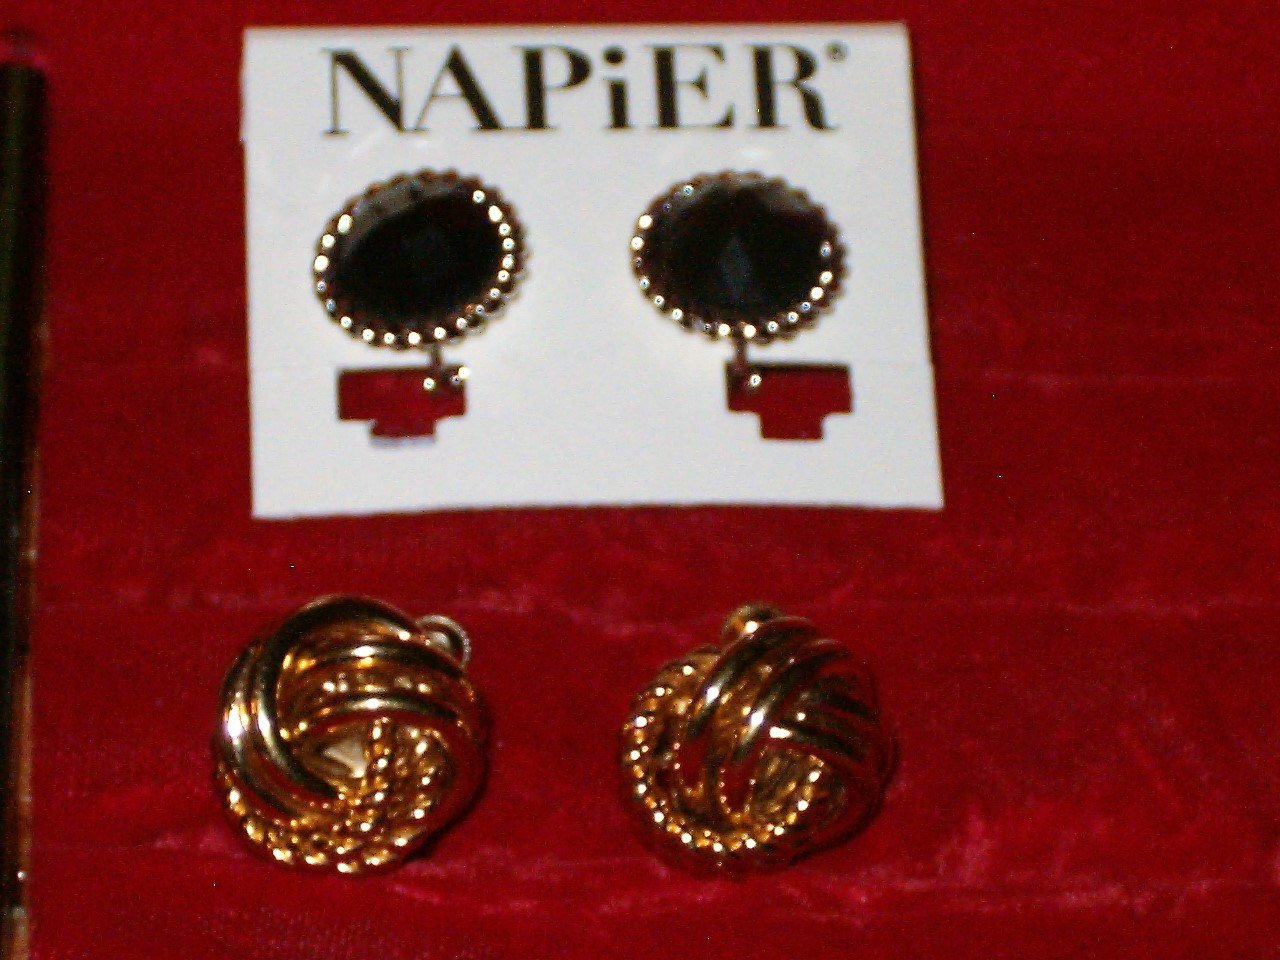 8fb56e8d1 Lot Of 2 Pair Vintage Signed Napier Screw Back Clip On Earrings 1 Gold  Plated Kn